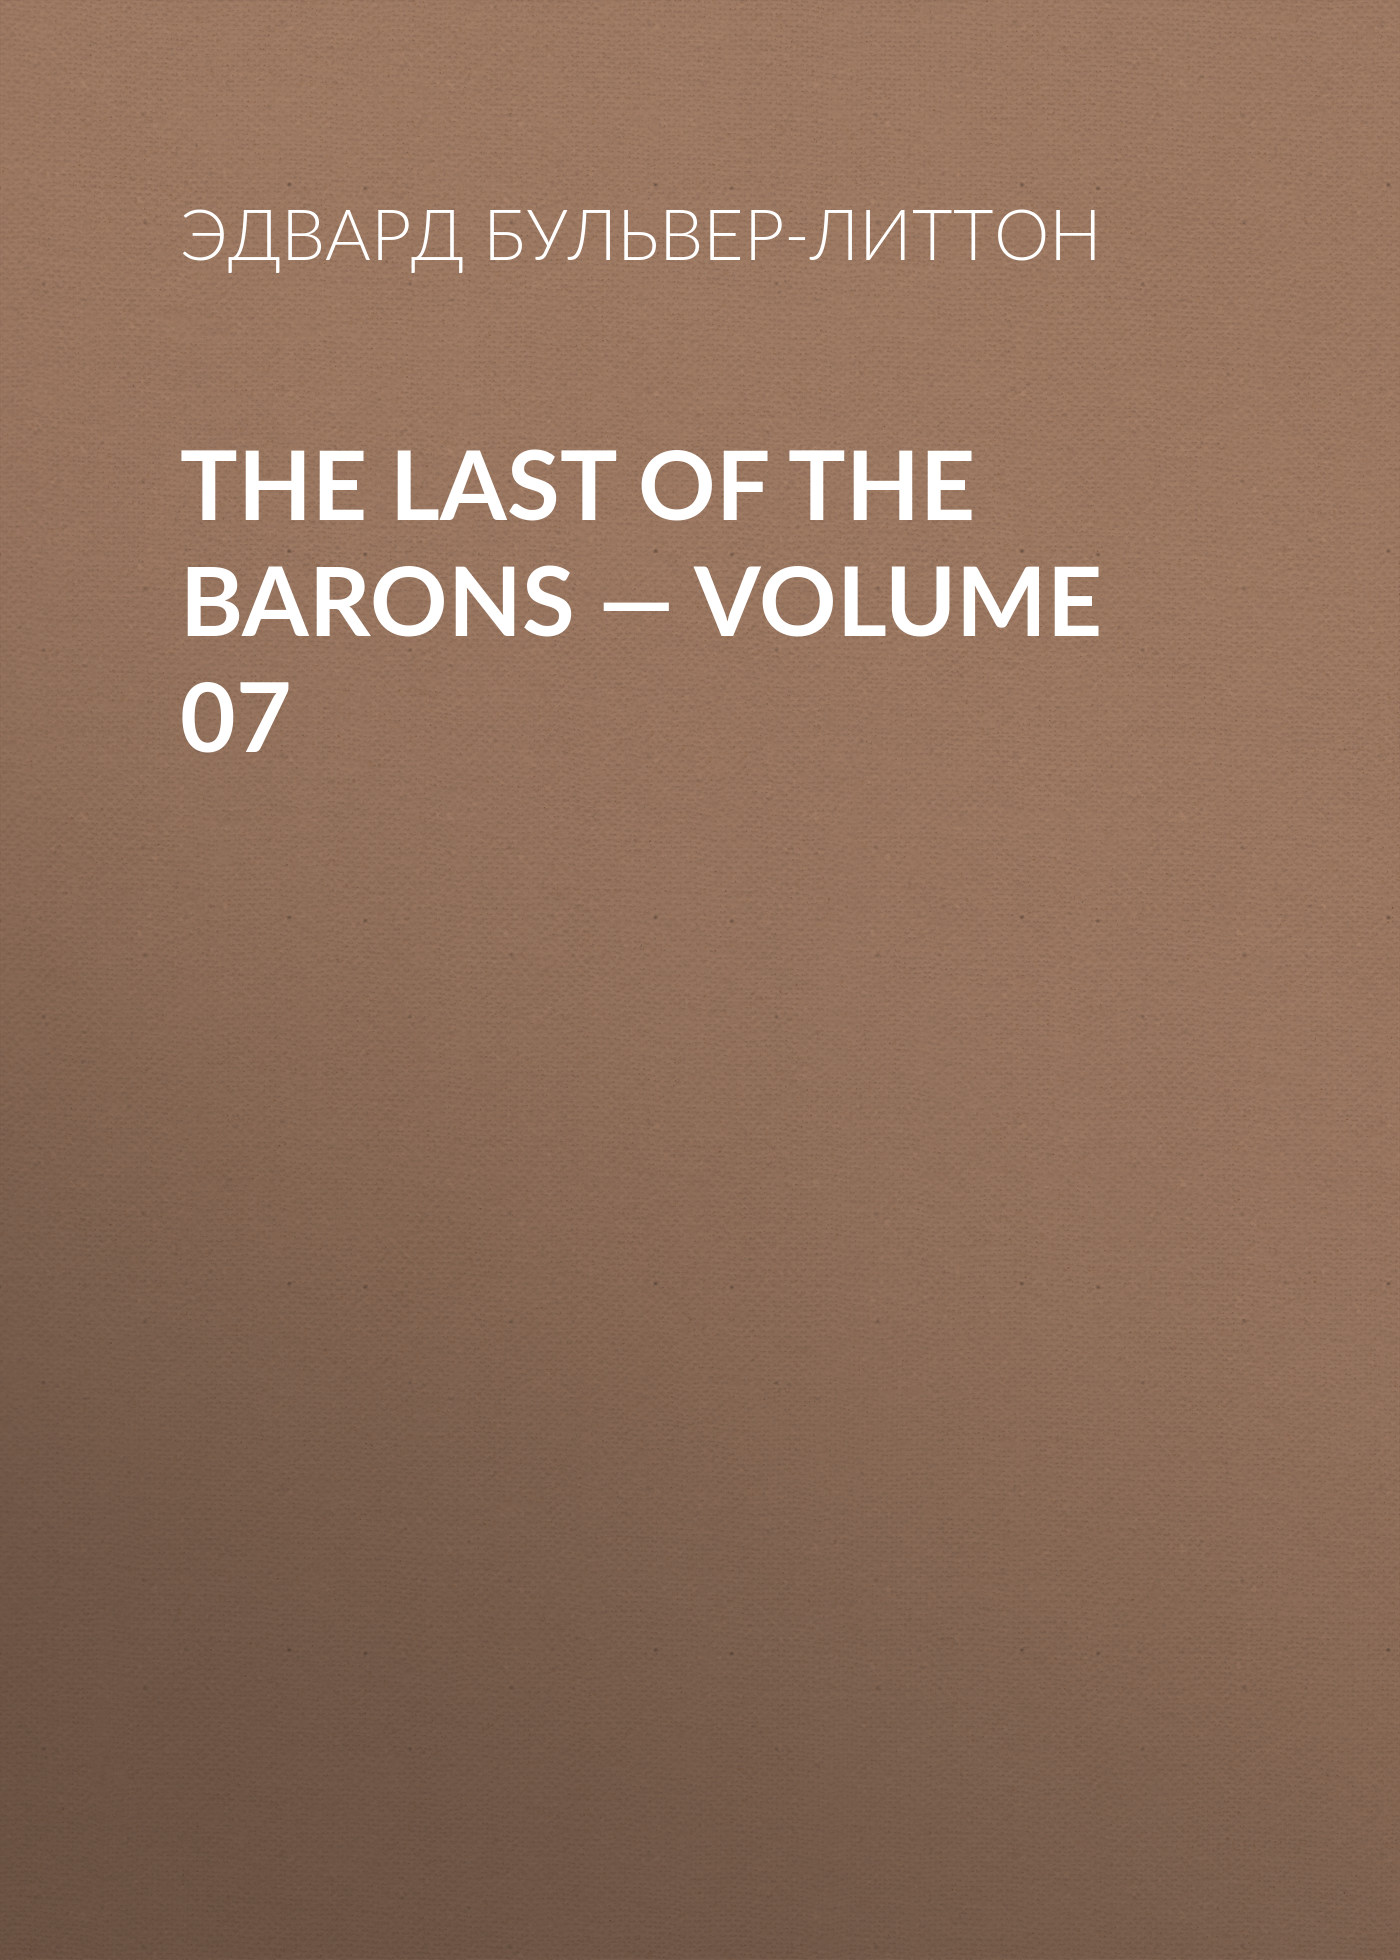 Эдвард Бульвер-Литтон The Last of the Barons — Volume 07 эдвард бульвер литтон harold the last of the saxon kings volume 10